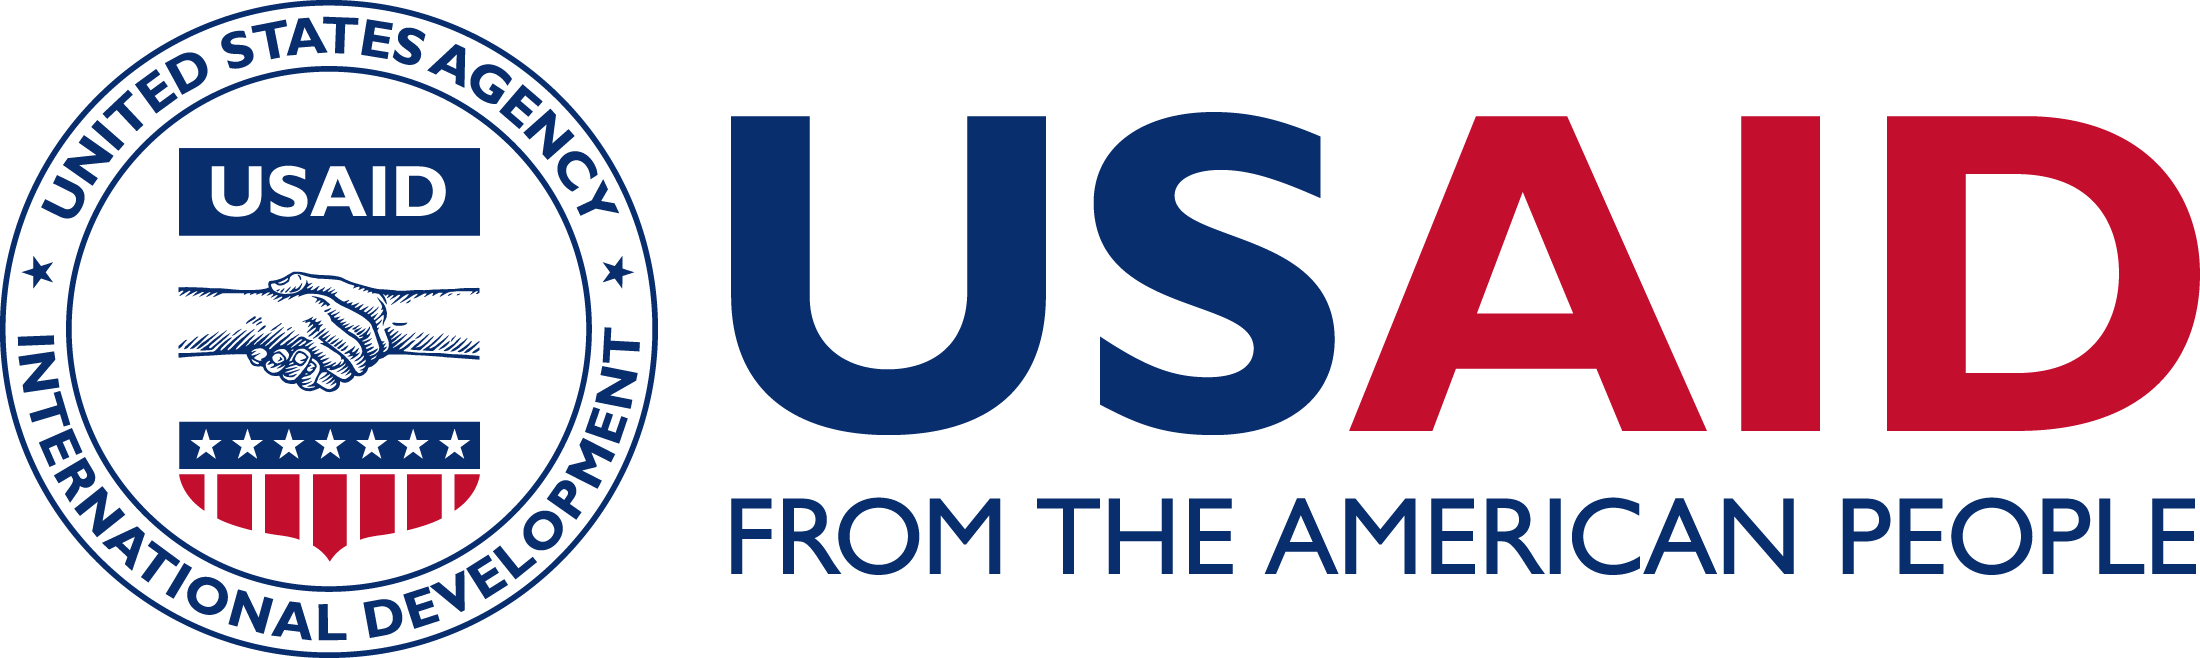 USAID Logo [United States Agency for International Development] png